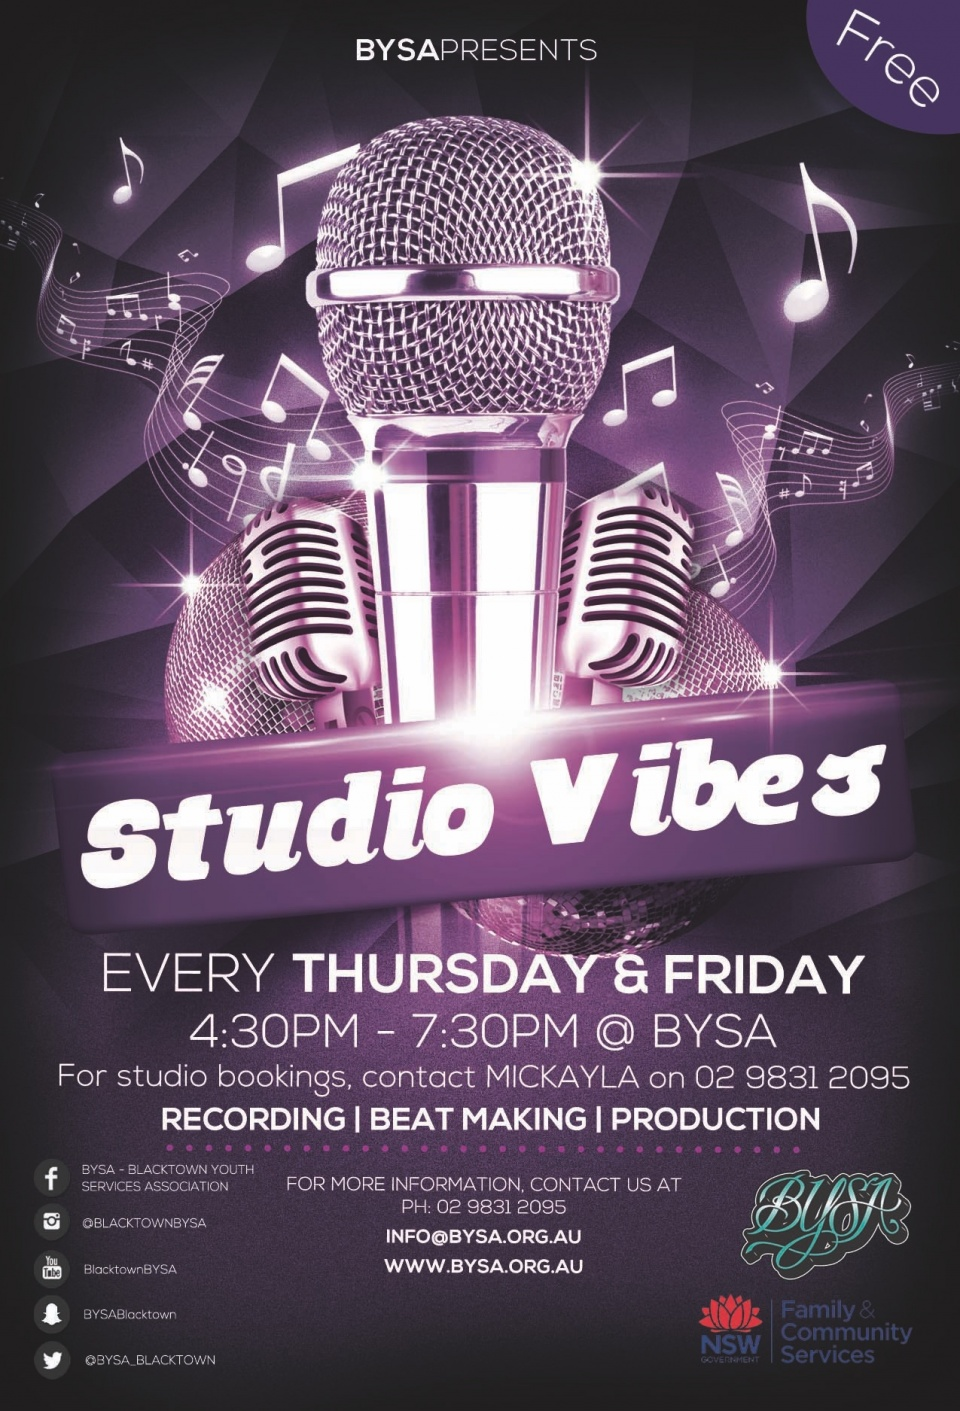 Recording, Beat Making, Production. Come in and have a go!